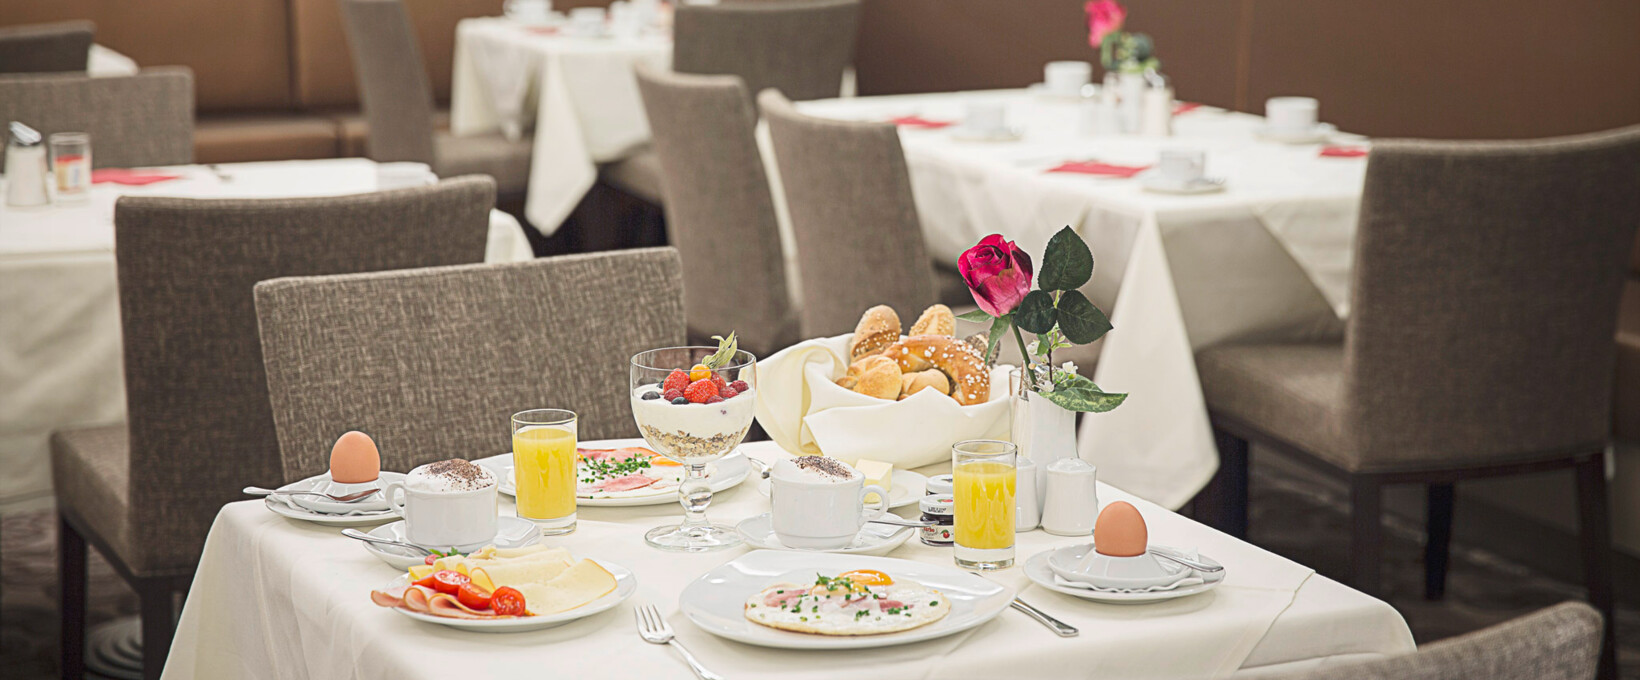 Breakfast table with egg and buns | Hotel Schillerpark in Linz